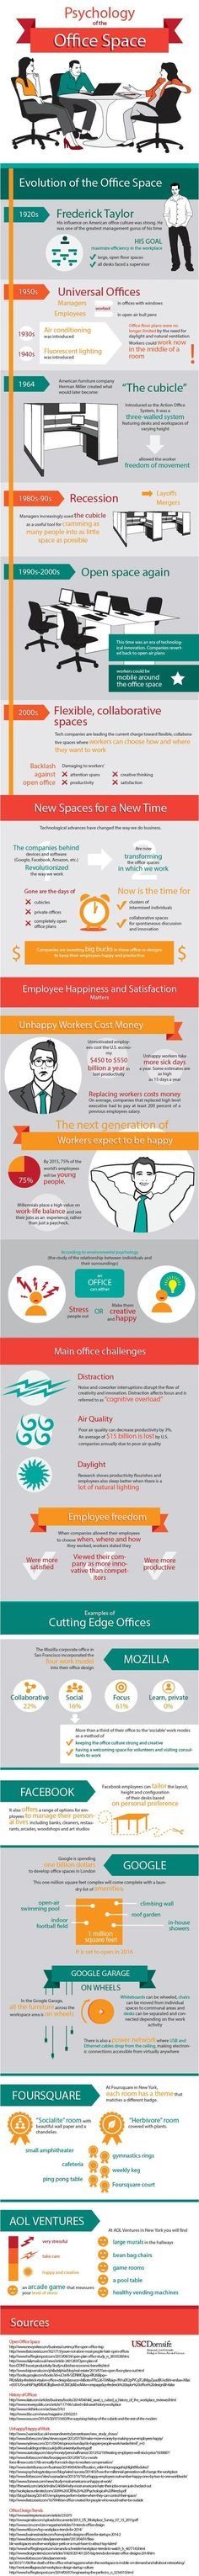 Psychology : Infographic  Psychology of the Office Space  Hppy